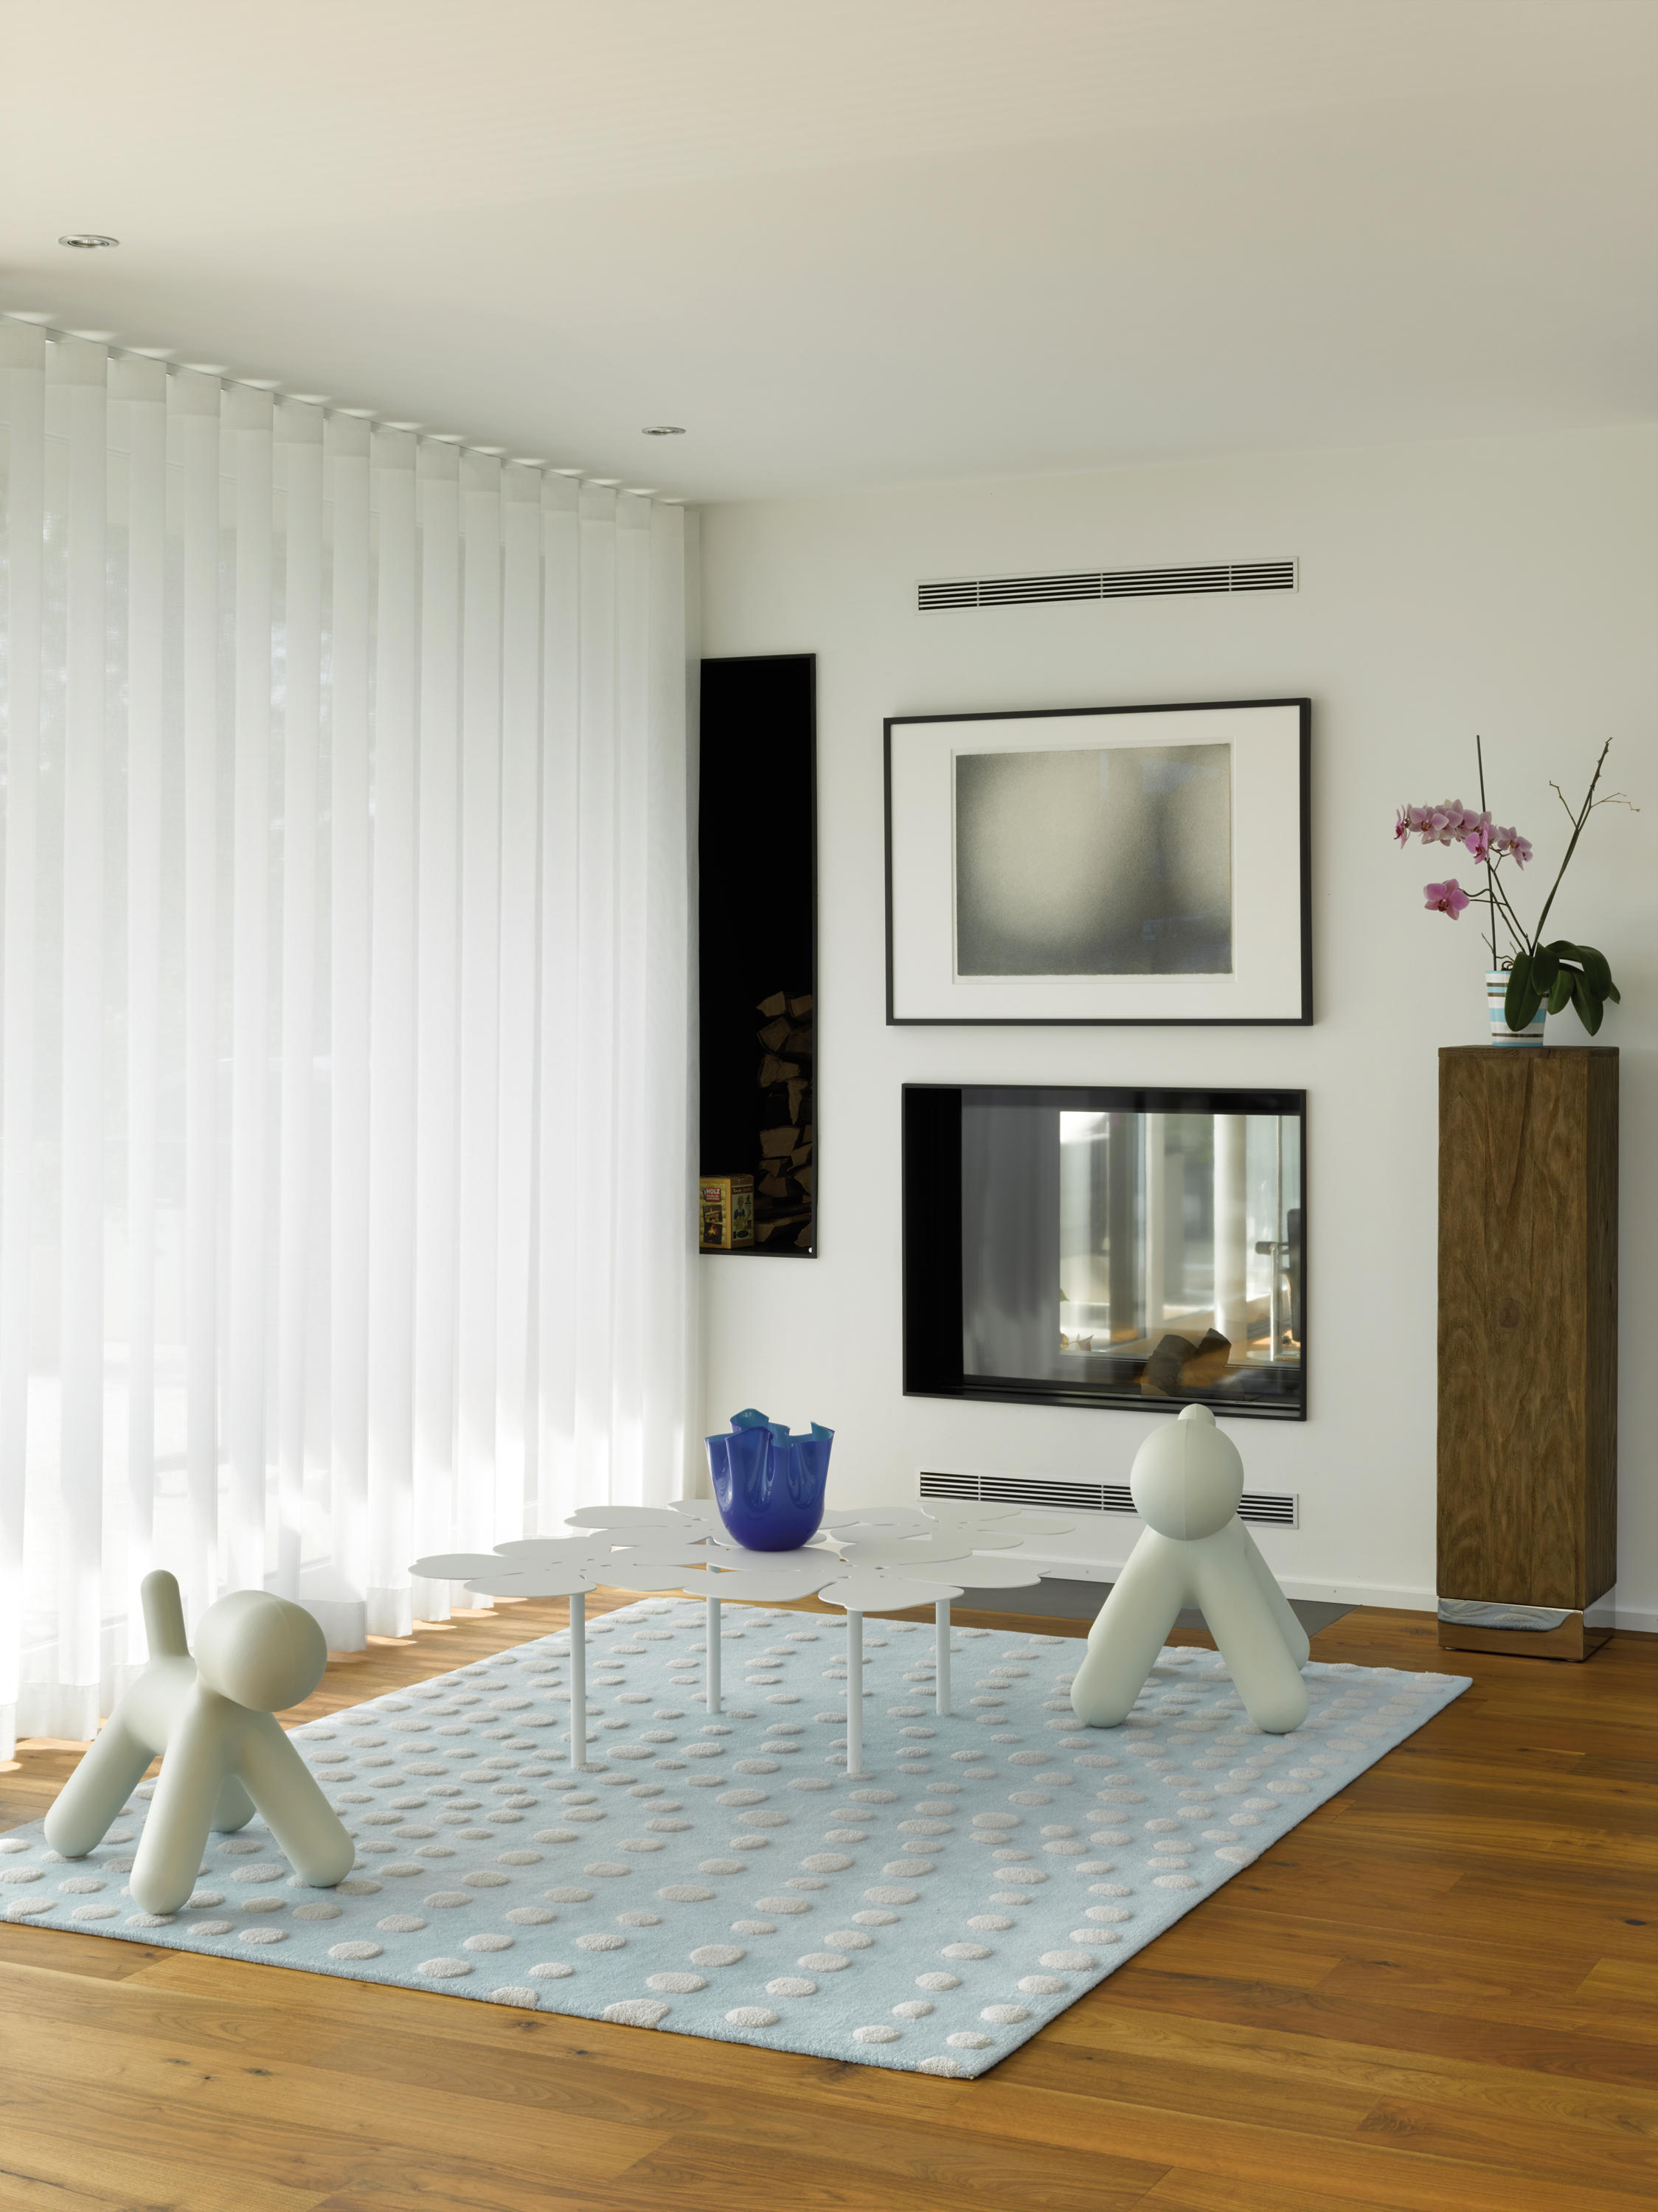 silent gliss hand operated curtain